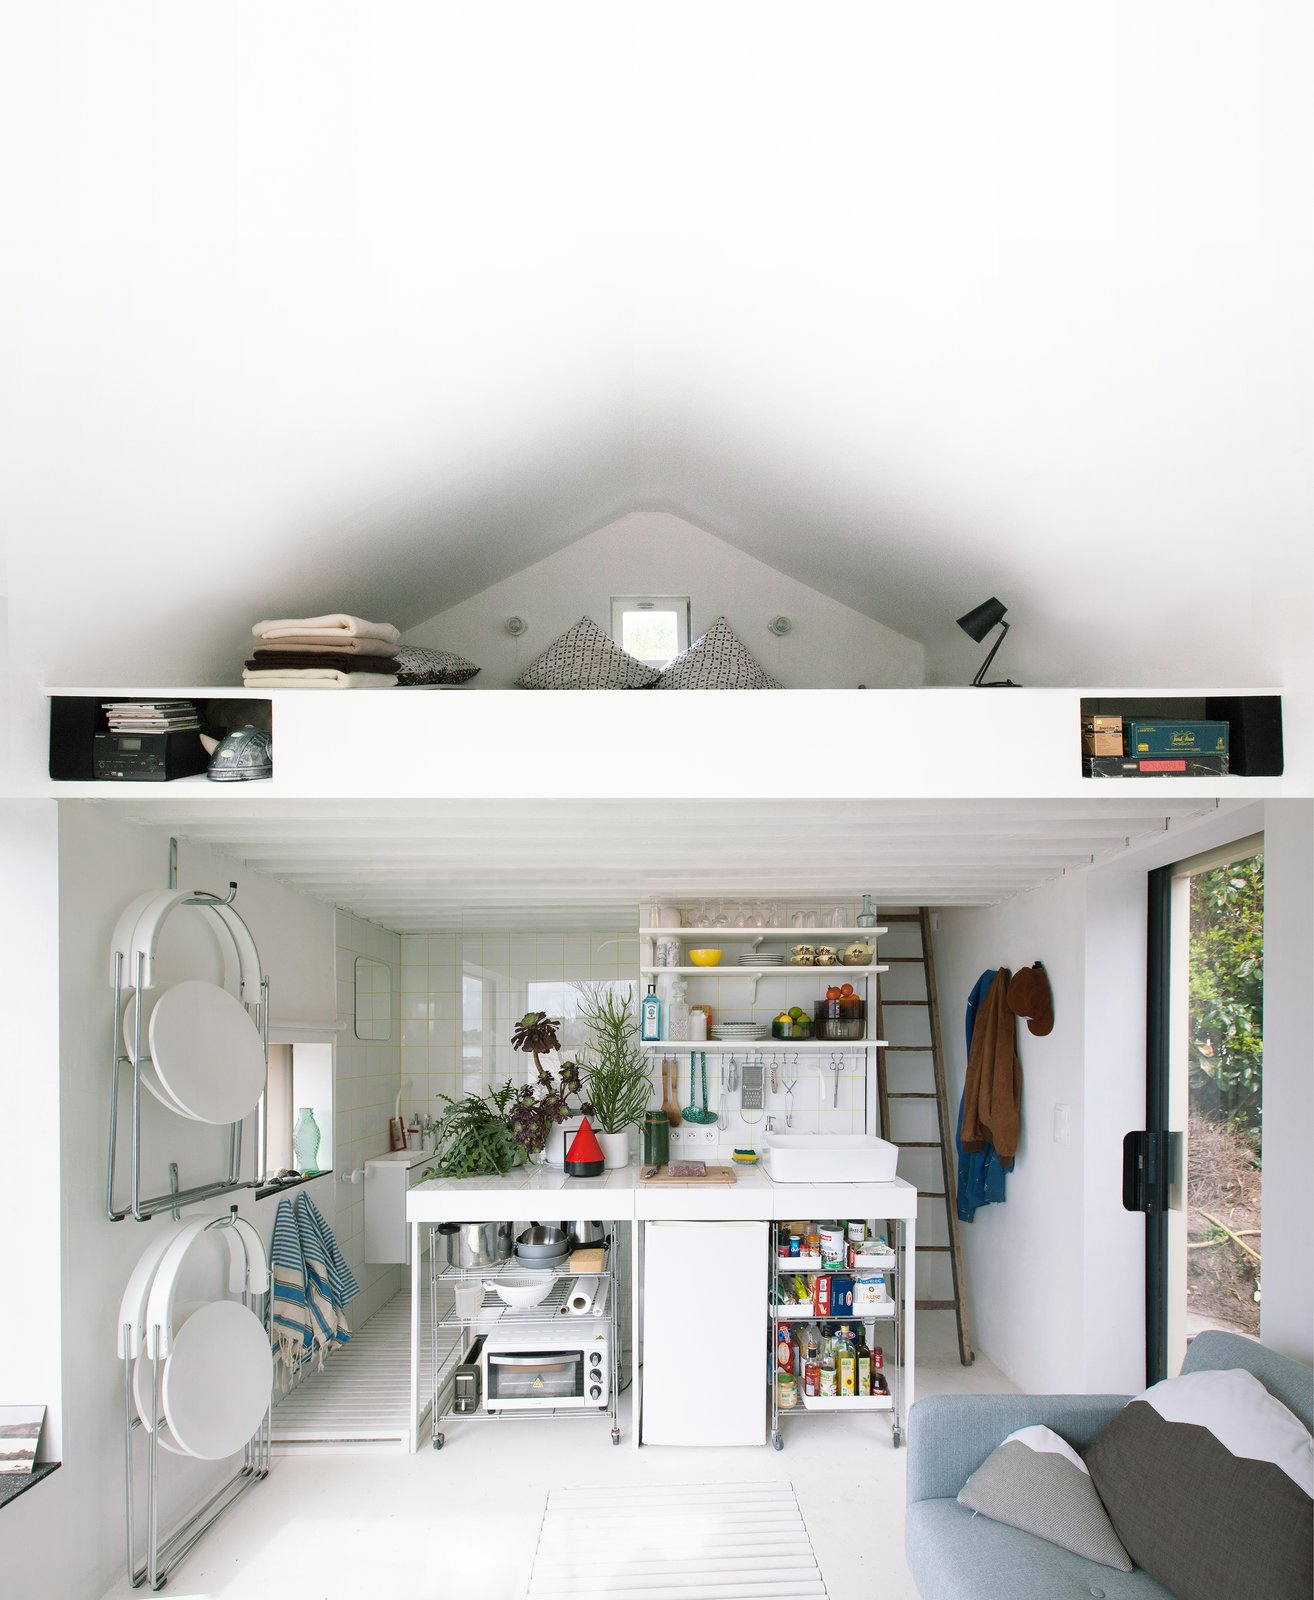 @aubry.guillaume Tagged: Kitchen, Tile Counter, White Cabinet, Ceramic Tile Backsplashe, Refrigerator, Ceiling Lighting, and Vessel Sink.  Viking Seaside Summer Cabin by zi ouiggy